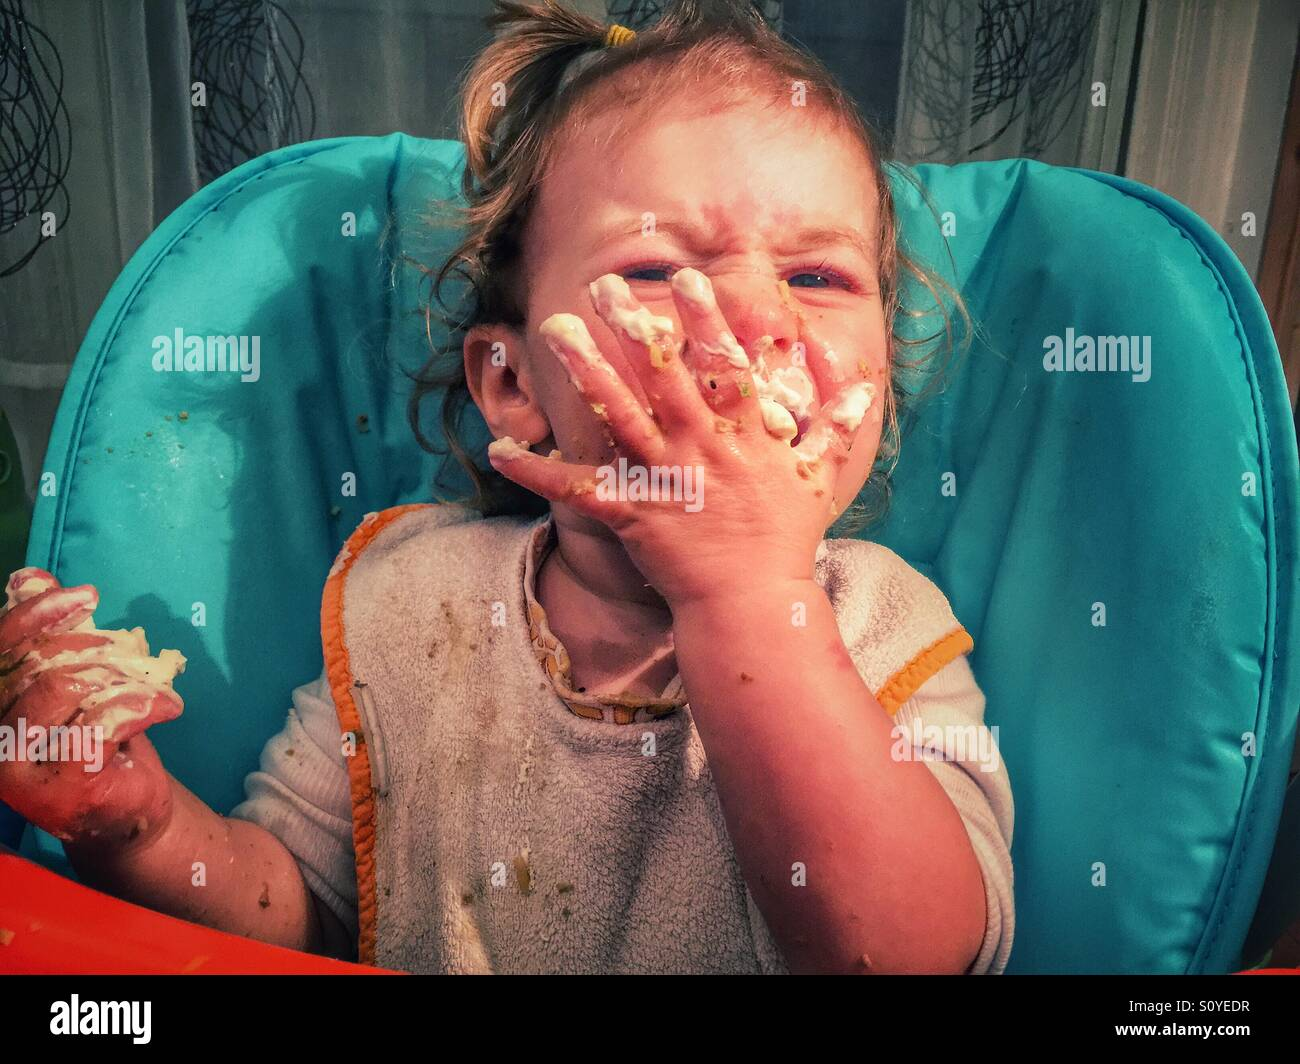 Baby eating messy face - Stock Image